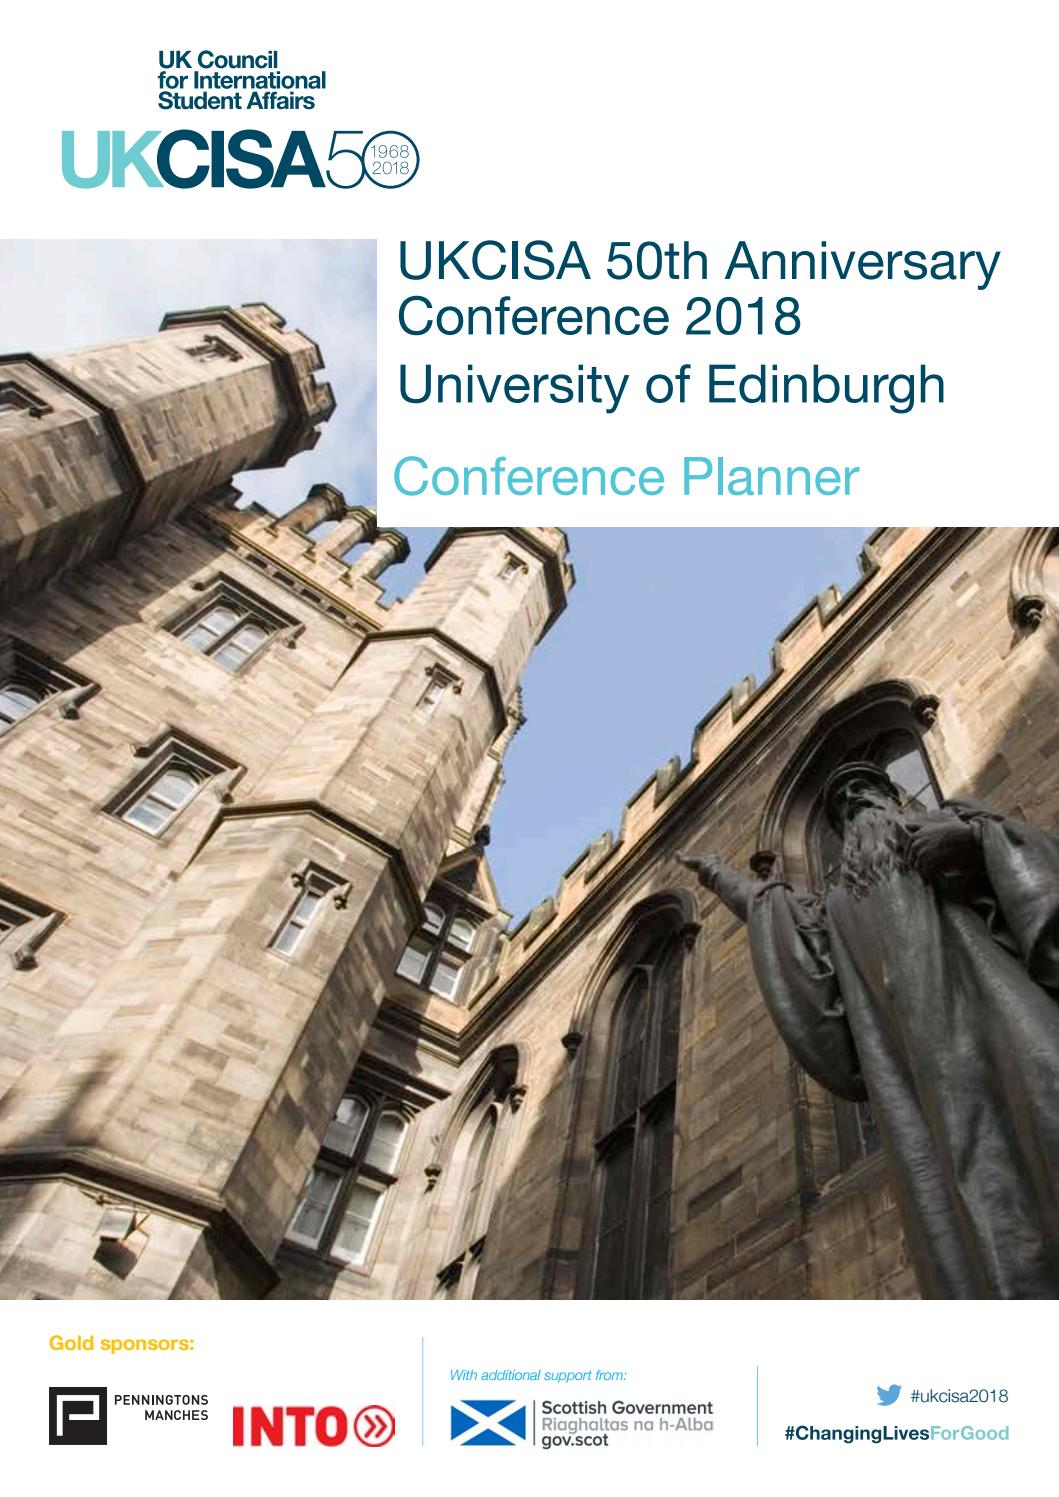 UKCISA Conference 2018 planner by UKCISA - issuu